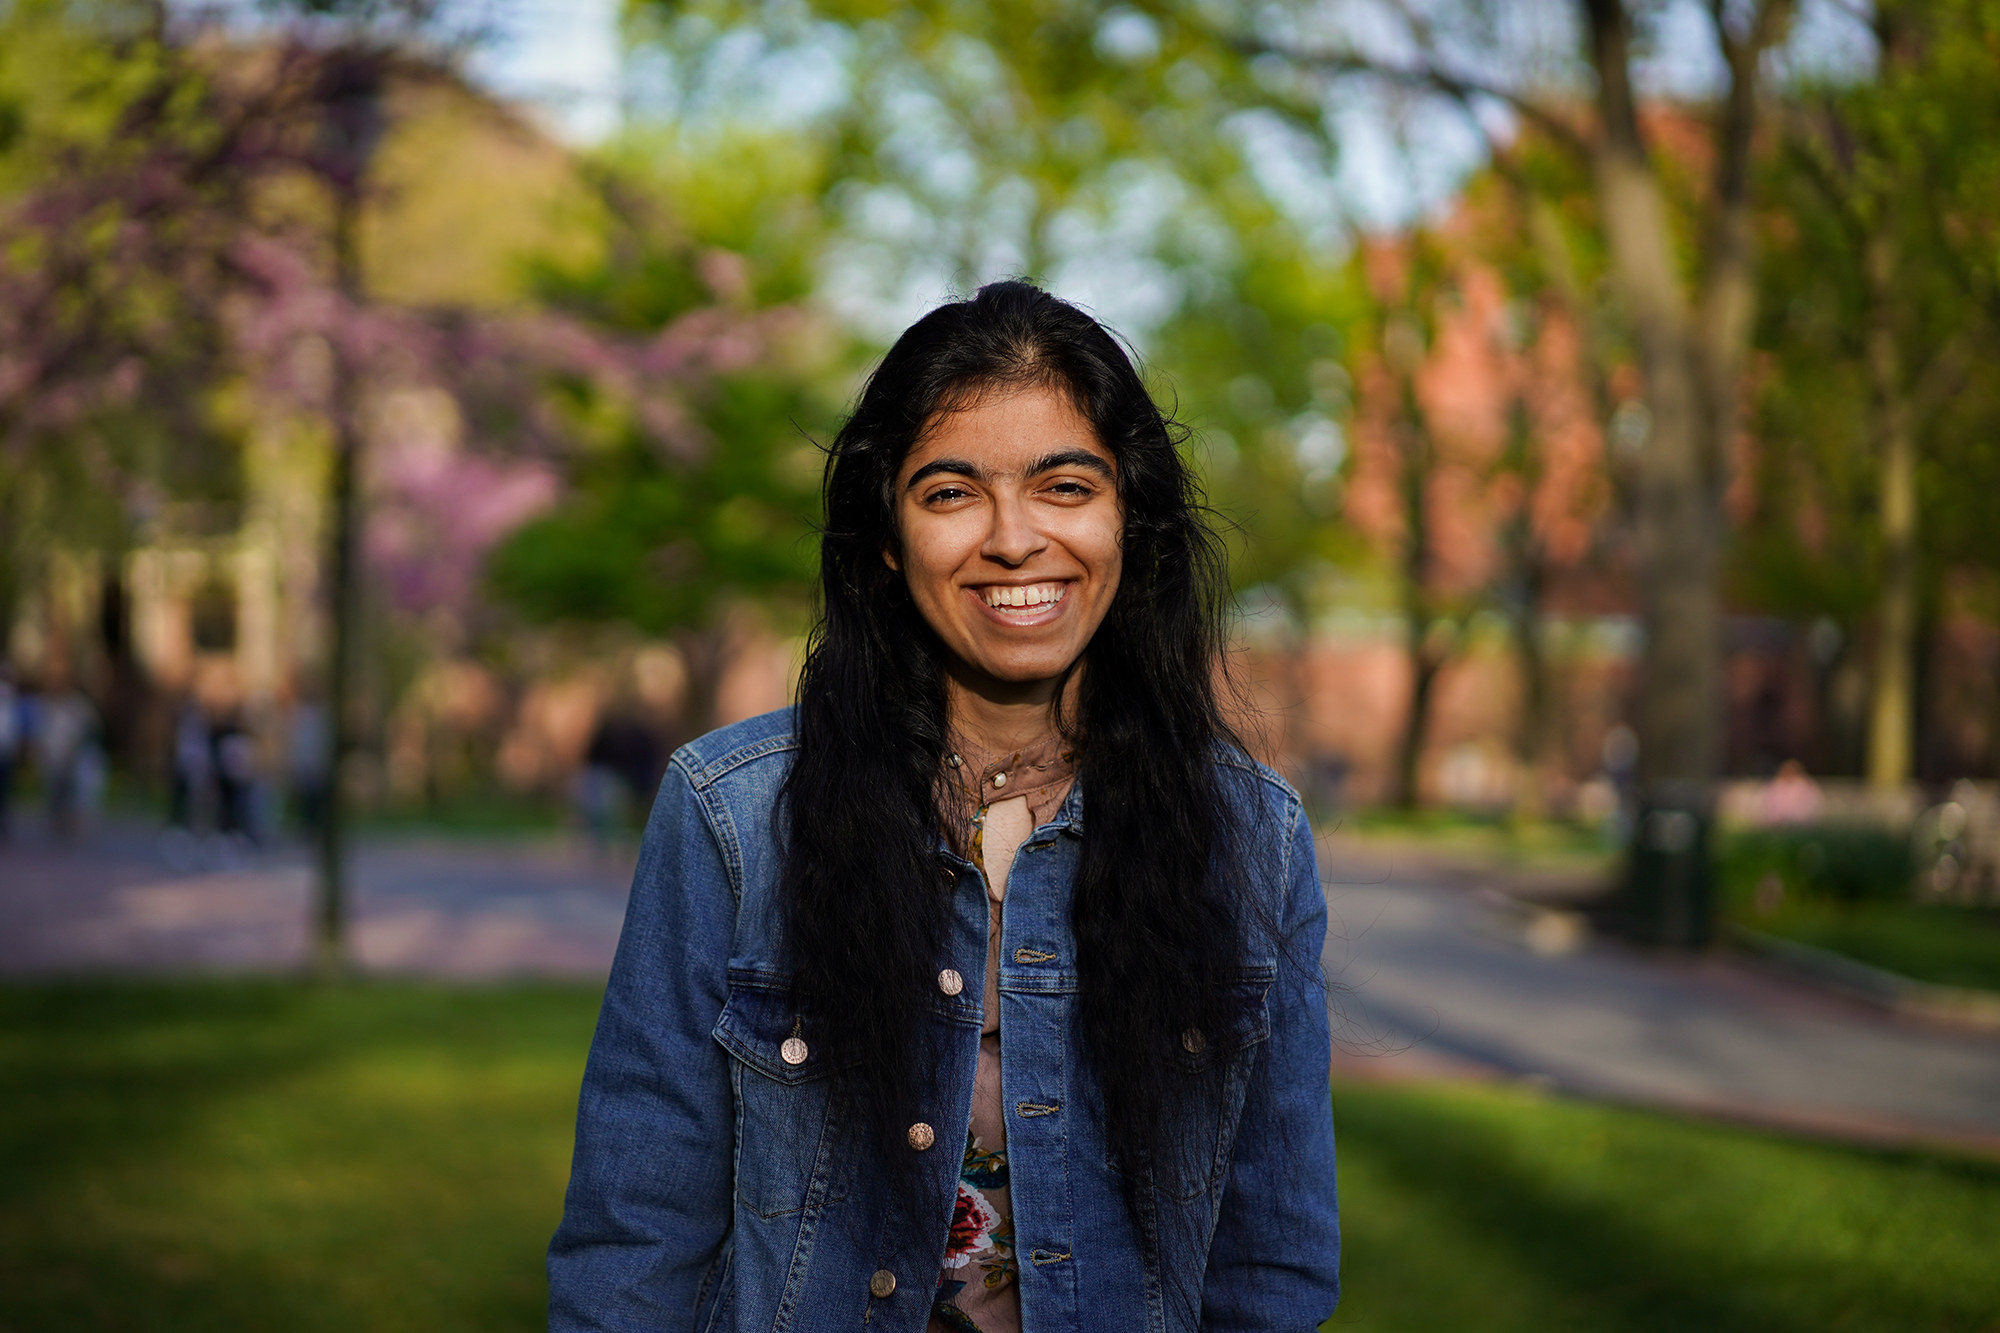 Sukhmani standing in some grass, smiling for the camera while on a campus